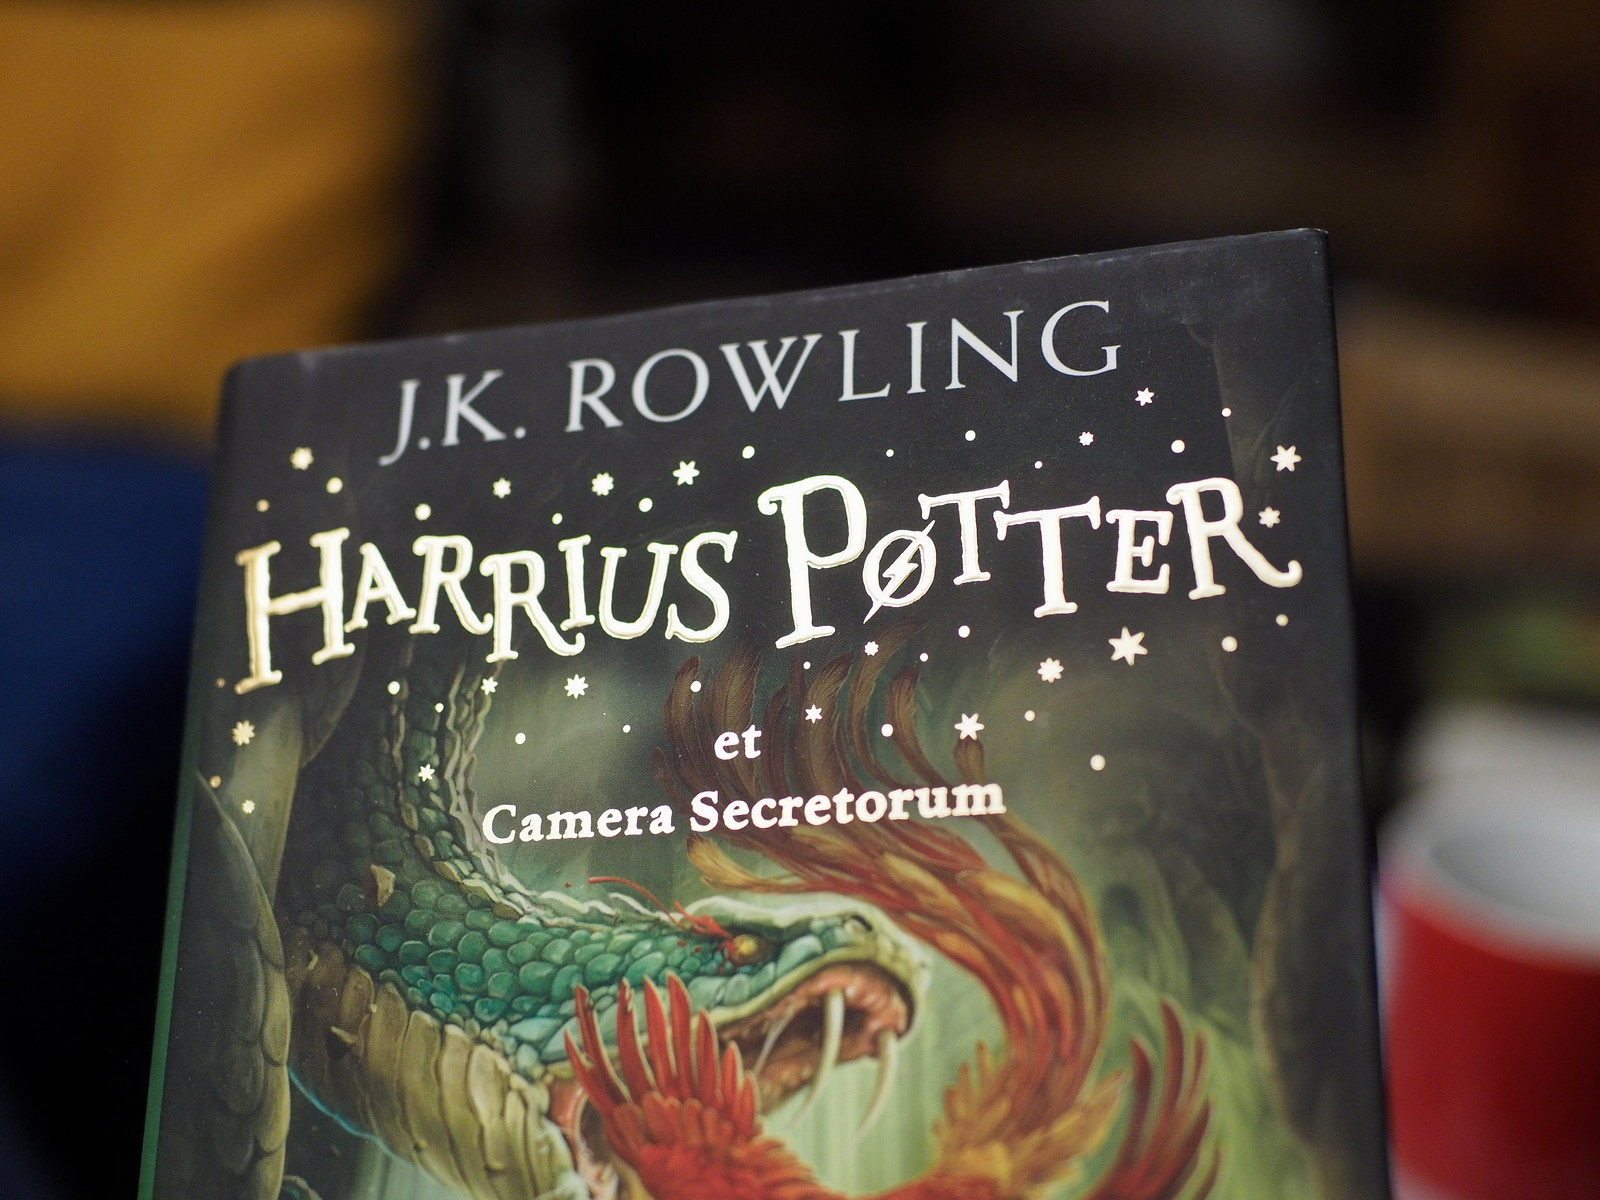 7e1_b138122-harrius-potter